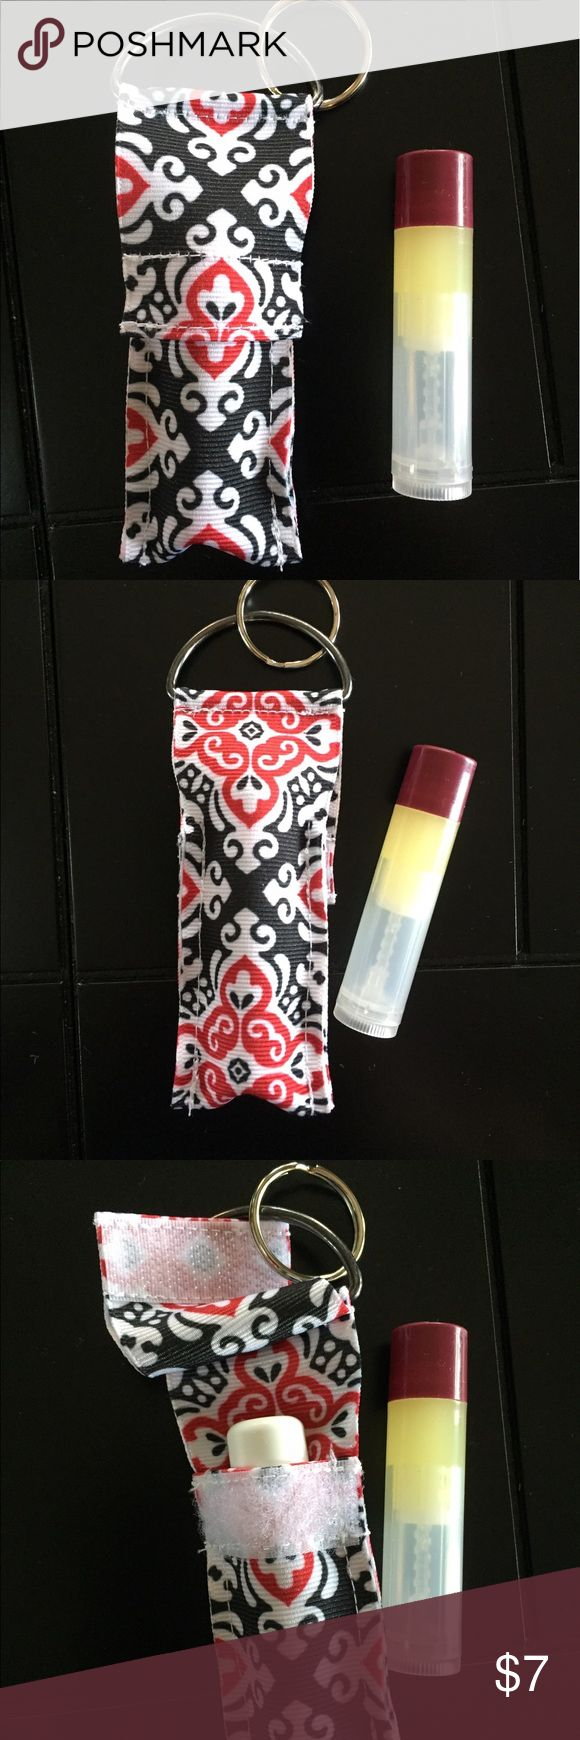 Blk & Red Mosaic lip balm holder My patent/copyright holder is perfect for anyone who loses or misplaces their lip balm. This holder can attach to key chains, lanyards, name tags, purses, bags, sports bags, etc.   Lip balm not included.  This holder fits regular size lip balm.  My patent/copyright holder has a flap closure to ensure your lip balm will stay put. Pat. D778043 Makeup Lip Balm & Gloss